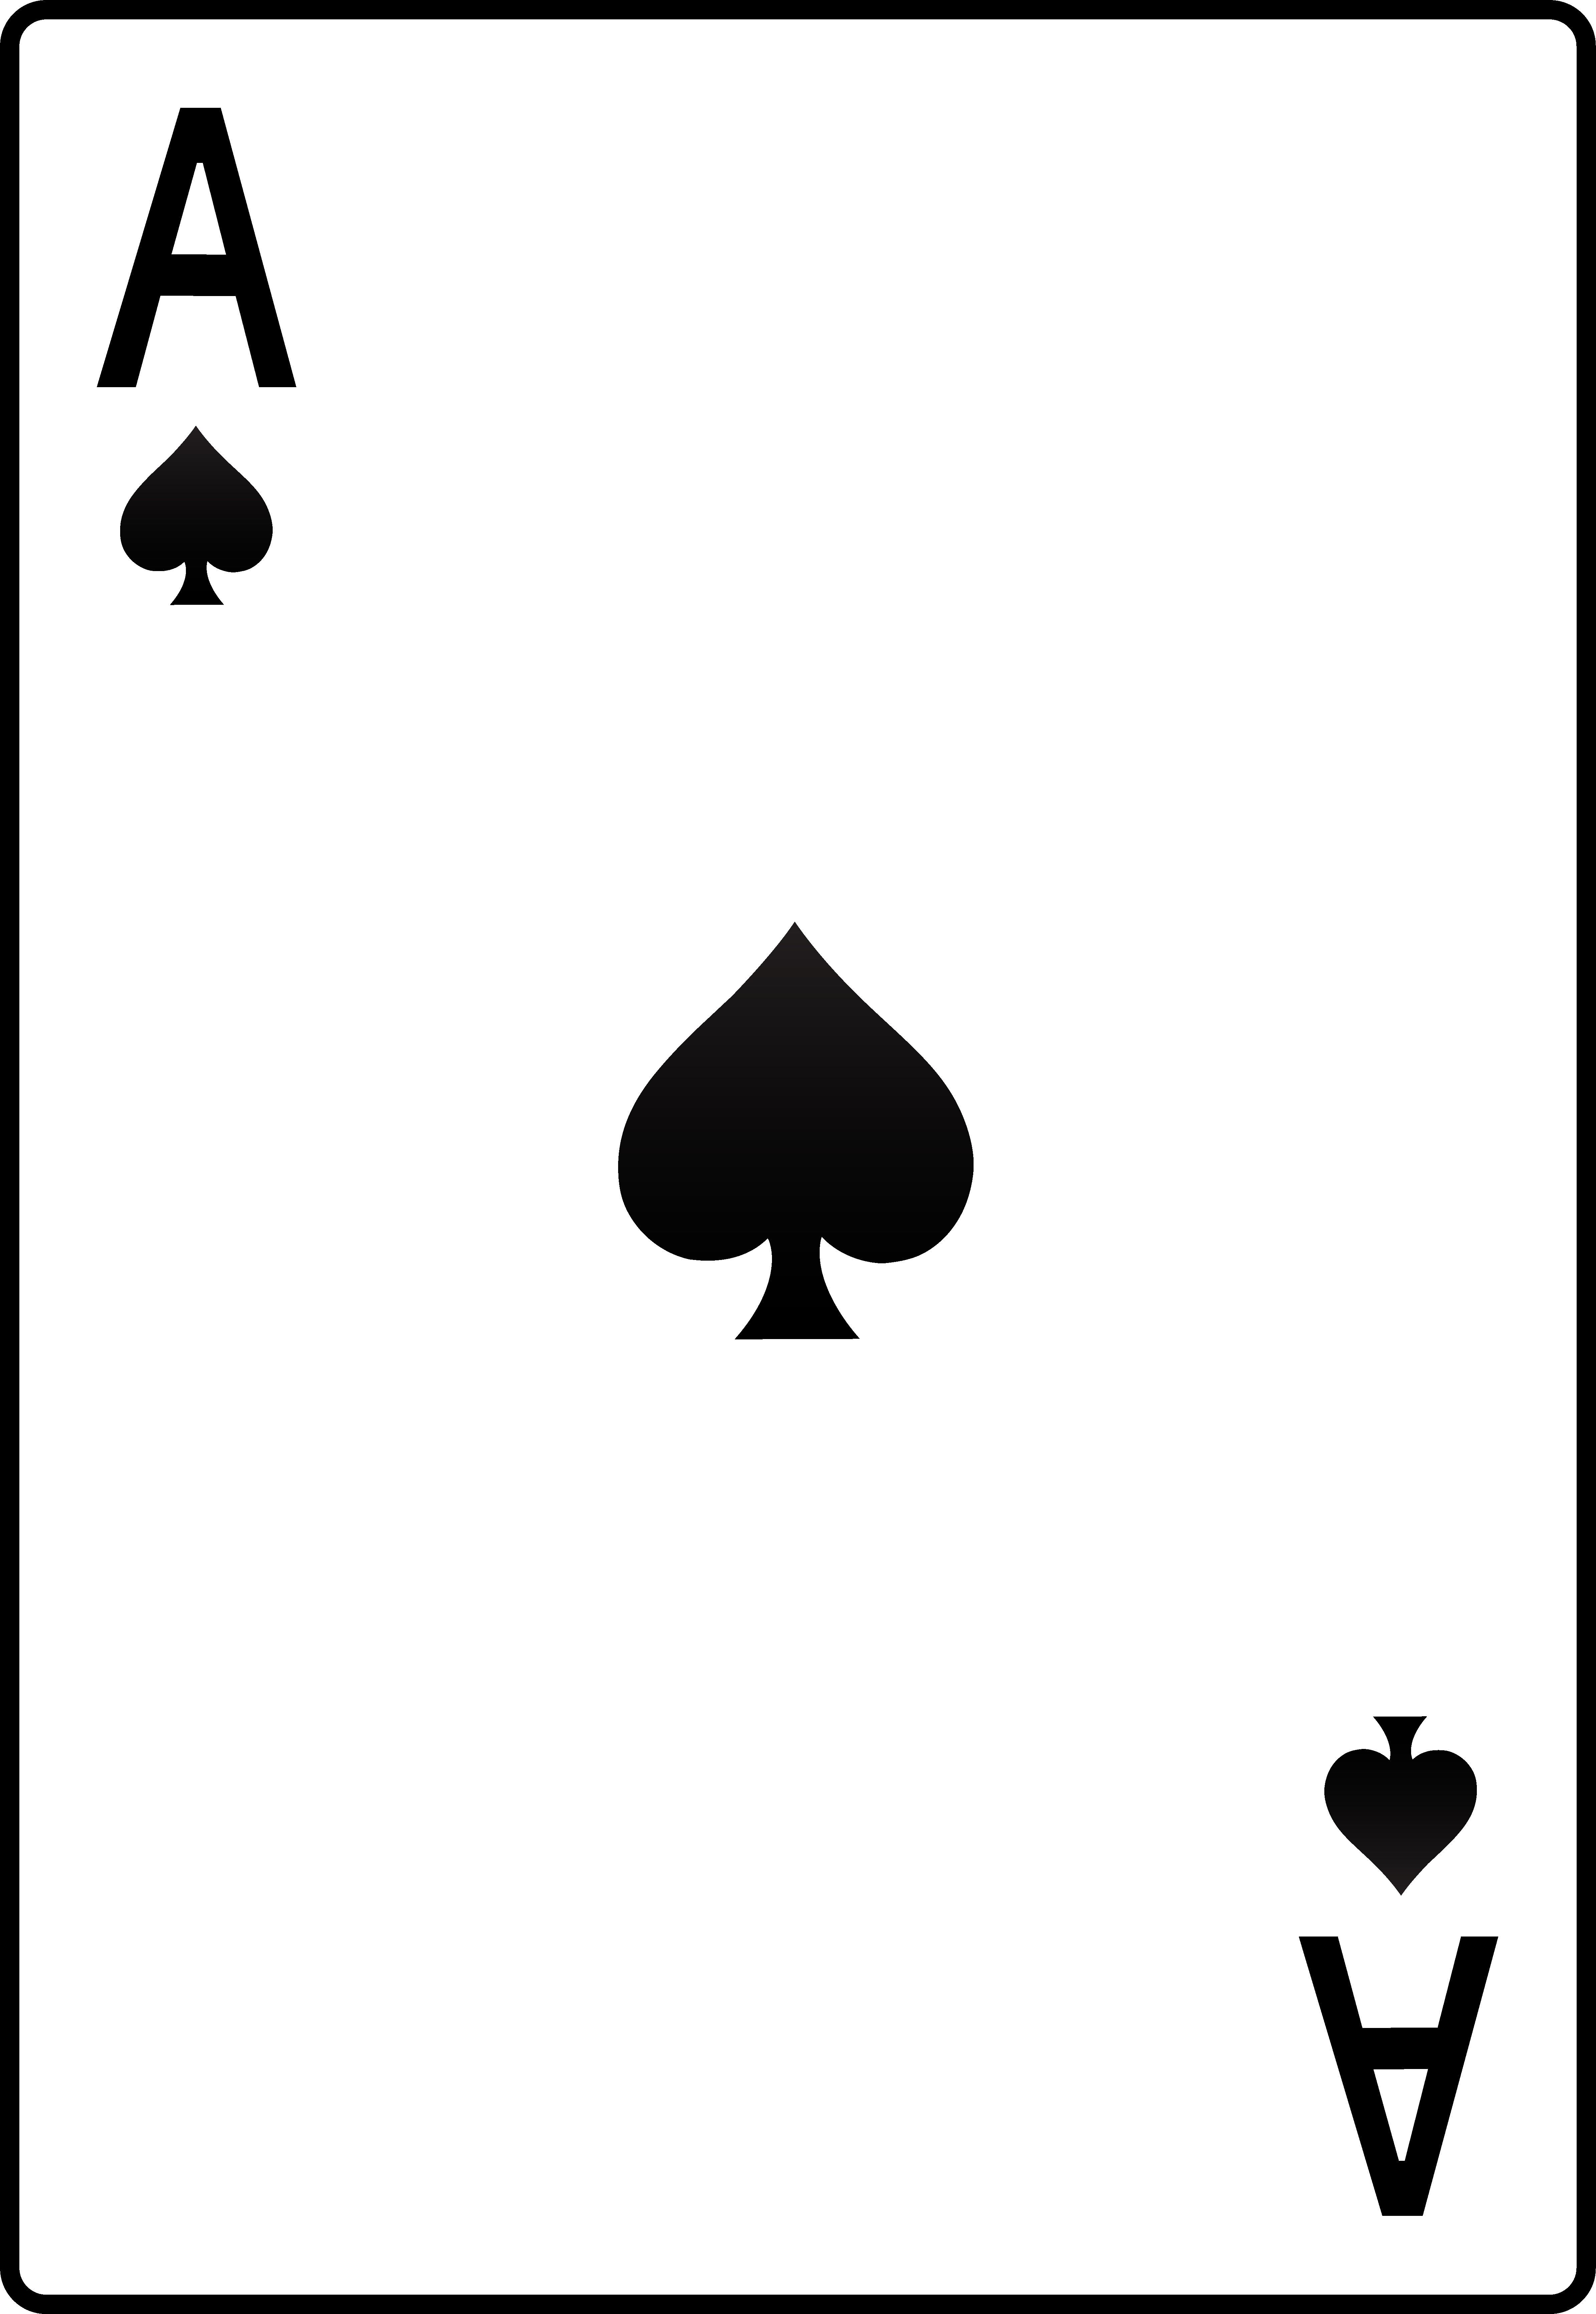 Deck Of Card Symbols Clipart Free Download Best Deck Of Card